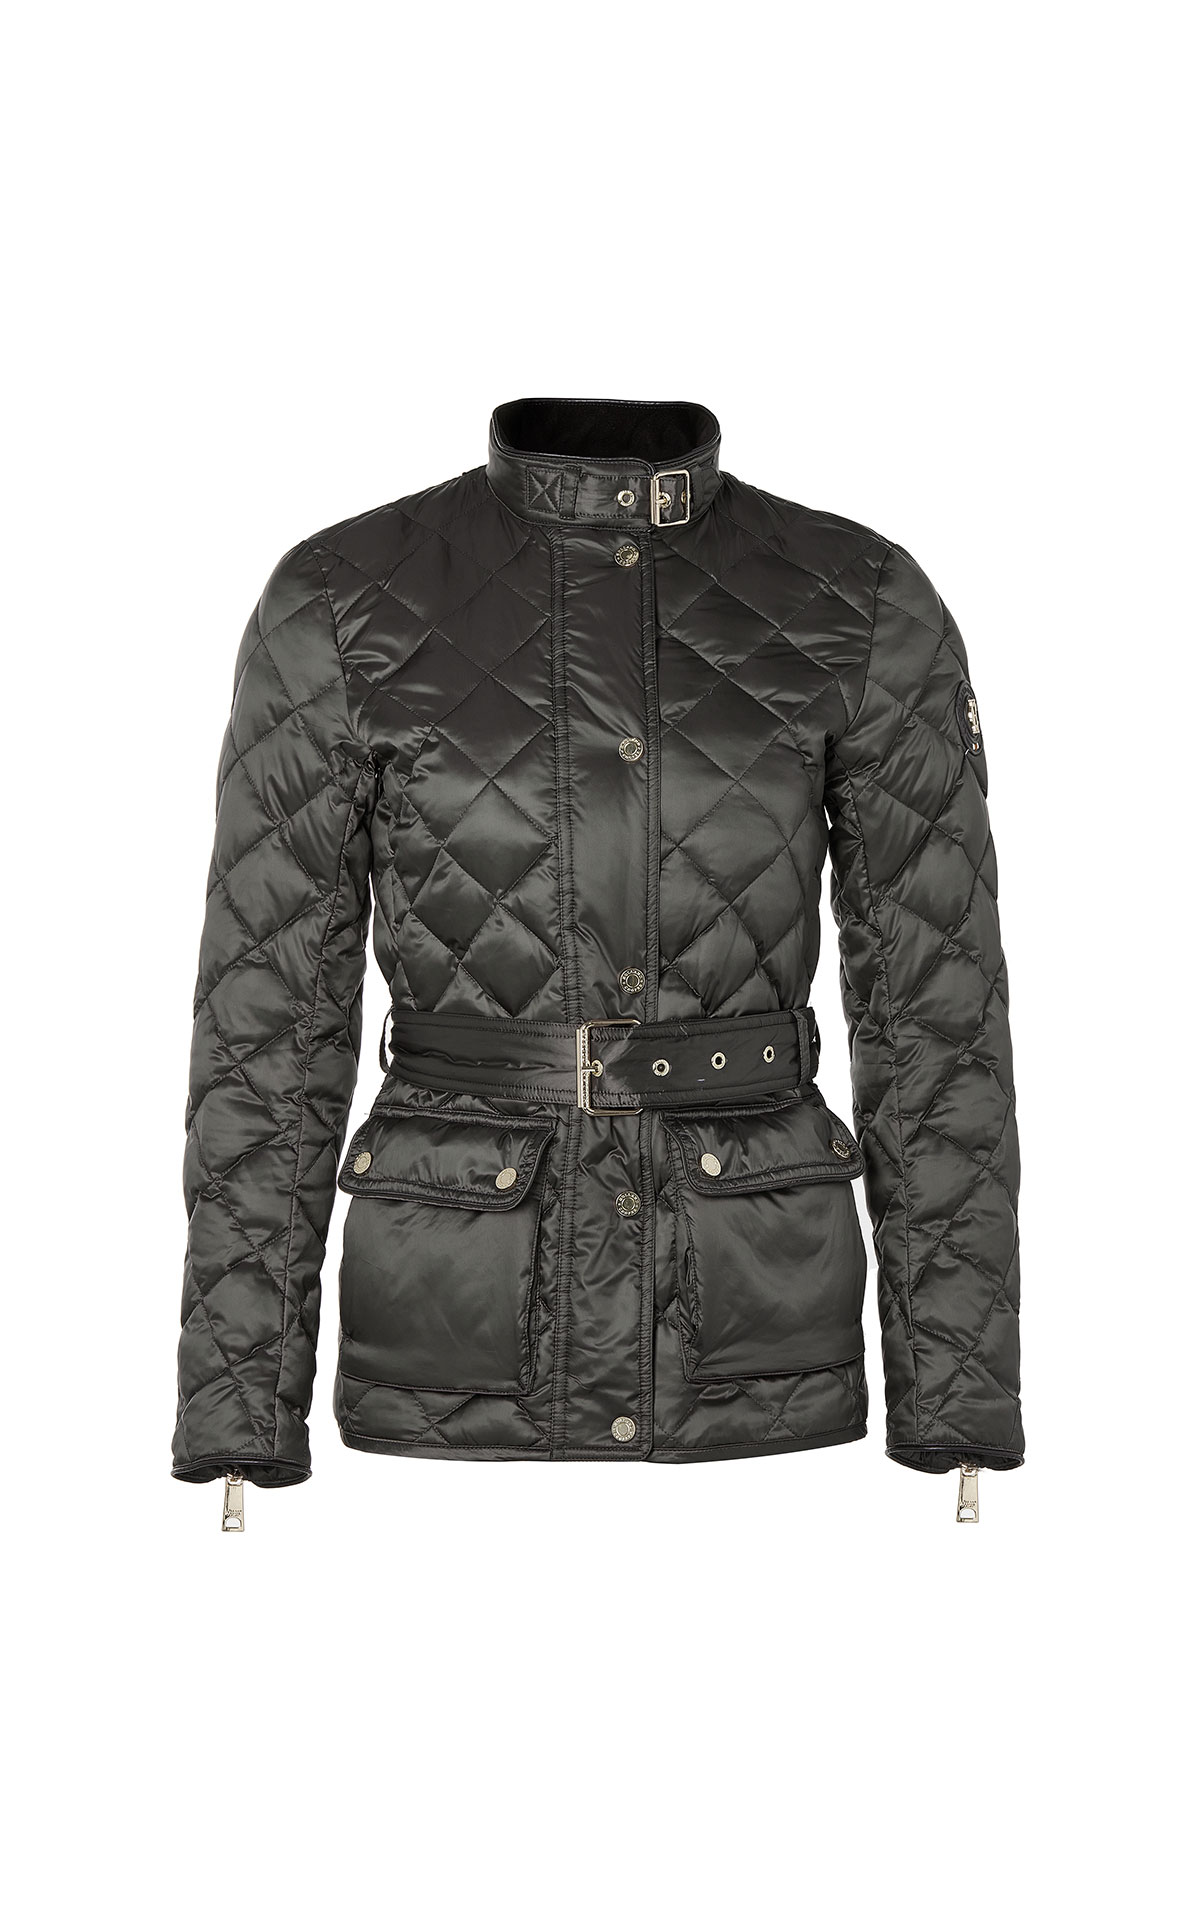 Holland Cooper Diamond quilt heritage jacket in petrol khaki from Bicester Village